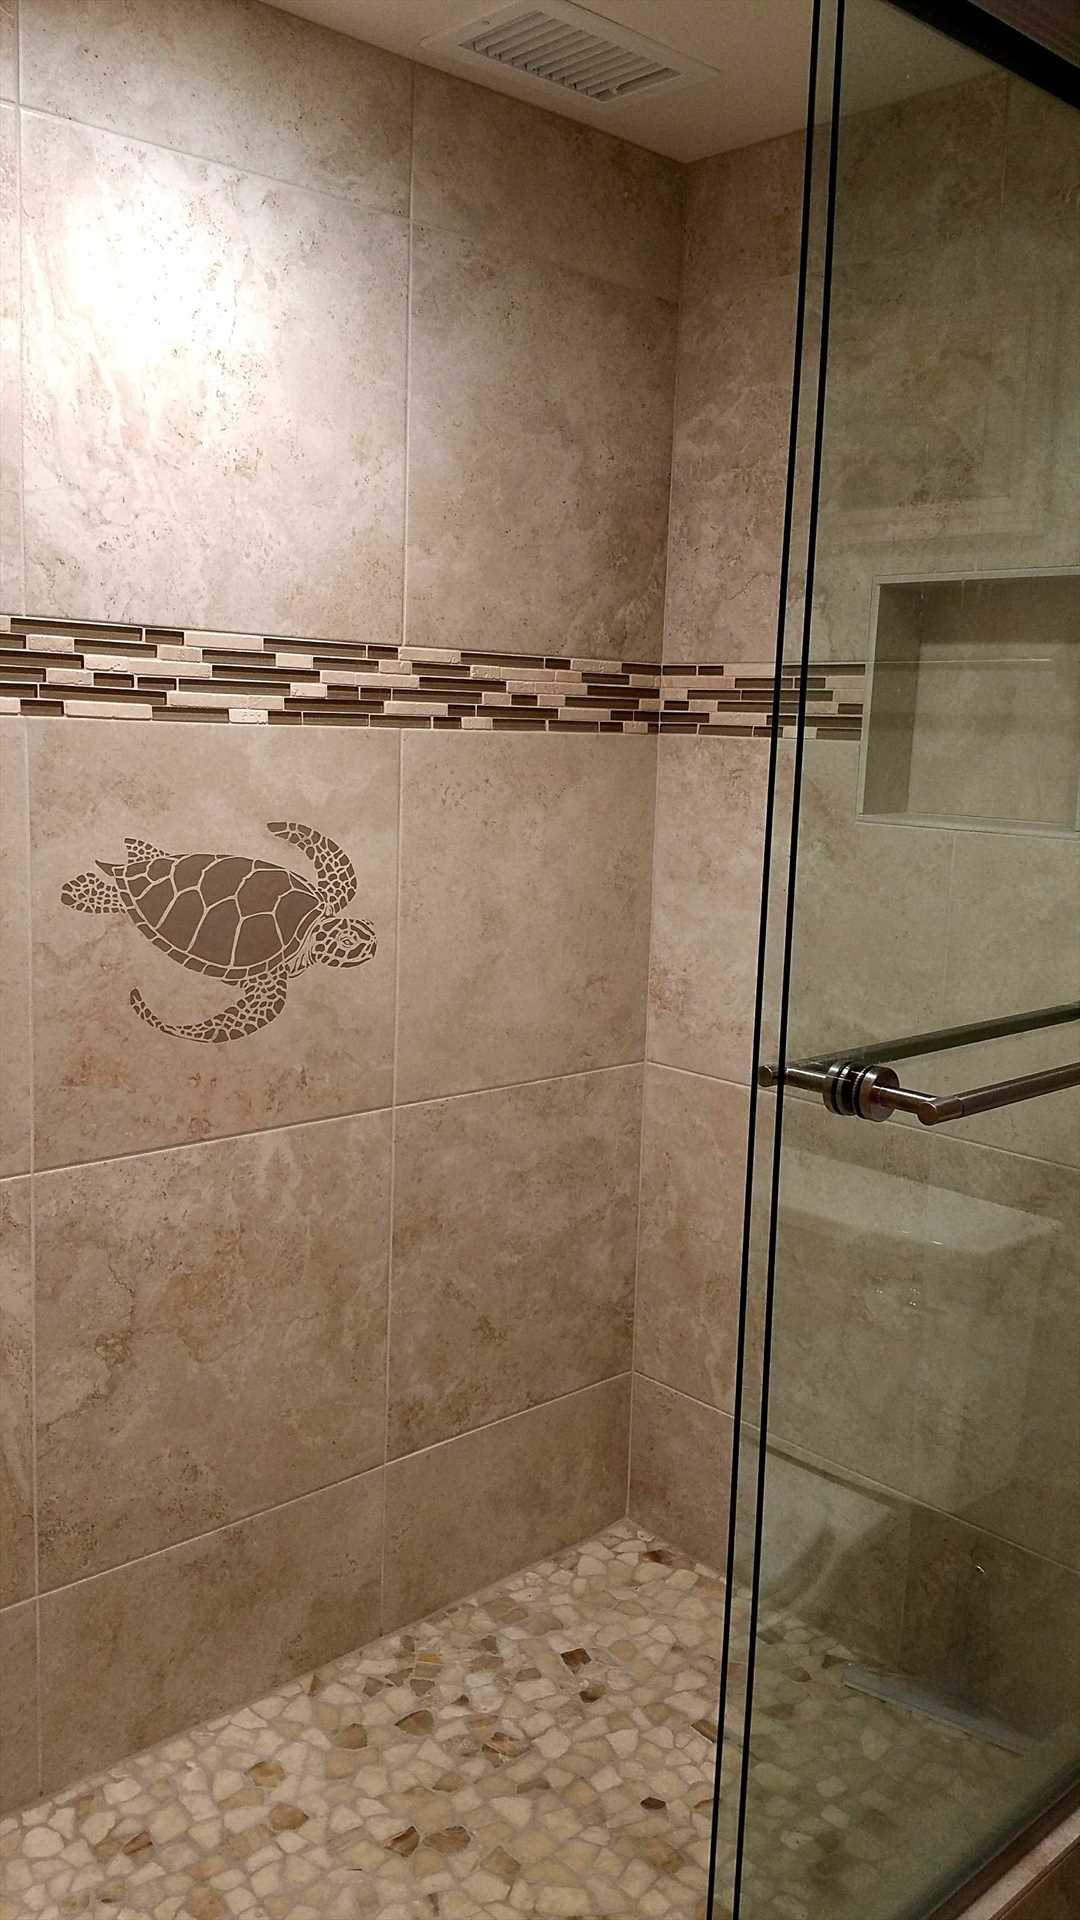 Brand new tiled shower at Kihei Akahi D506